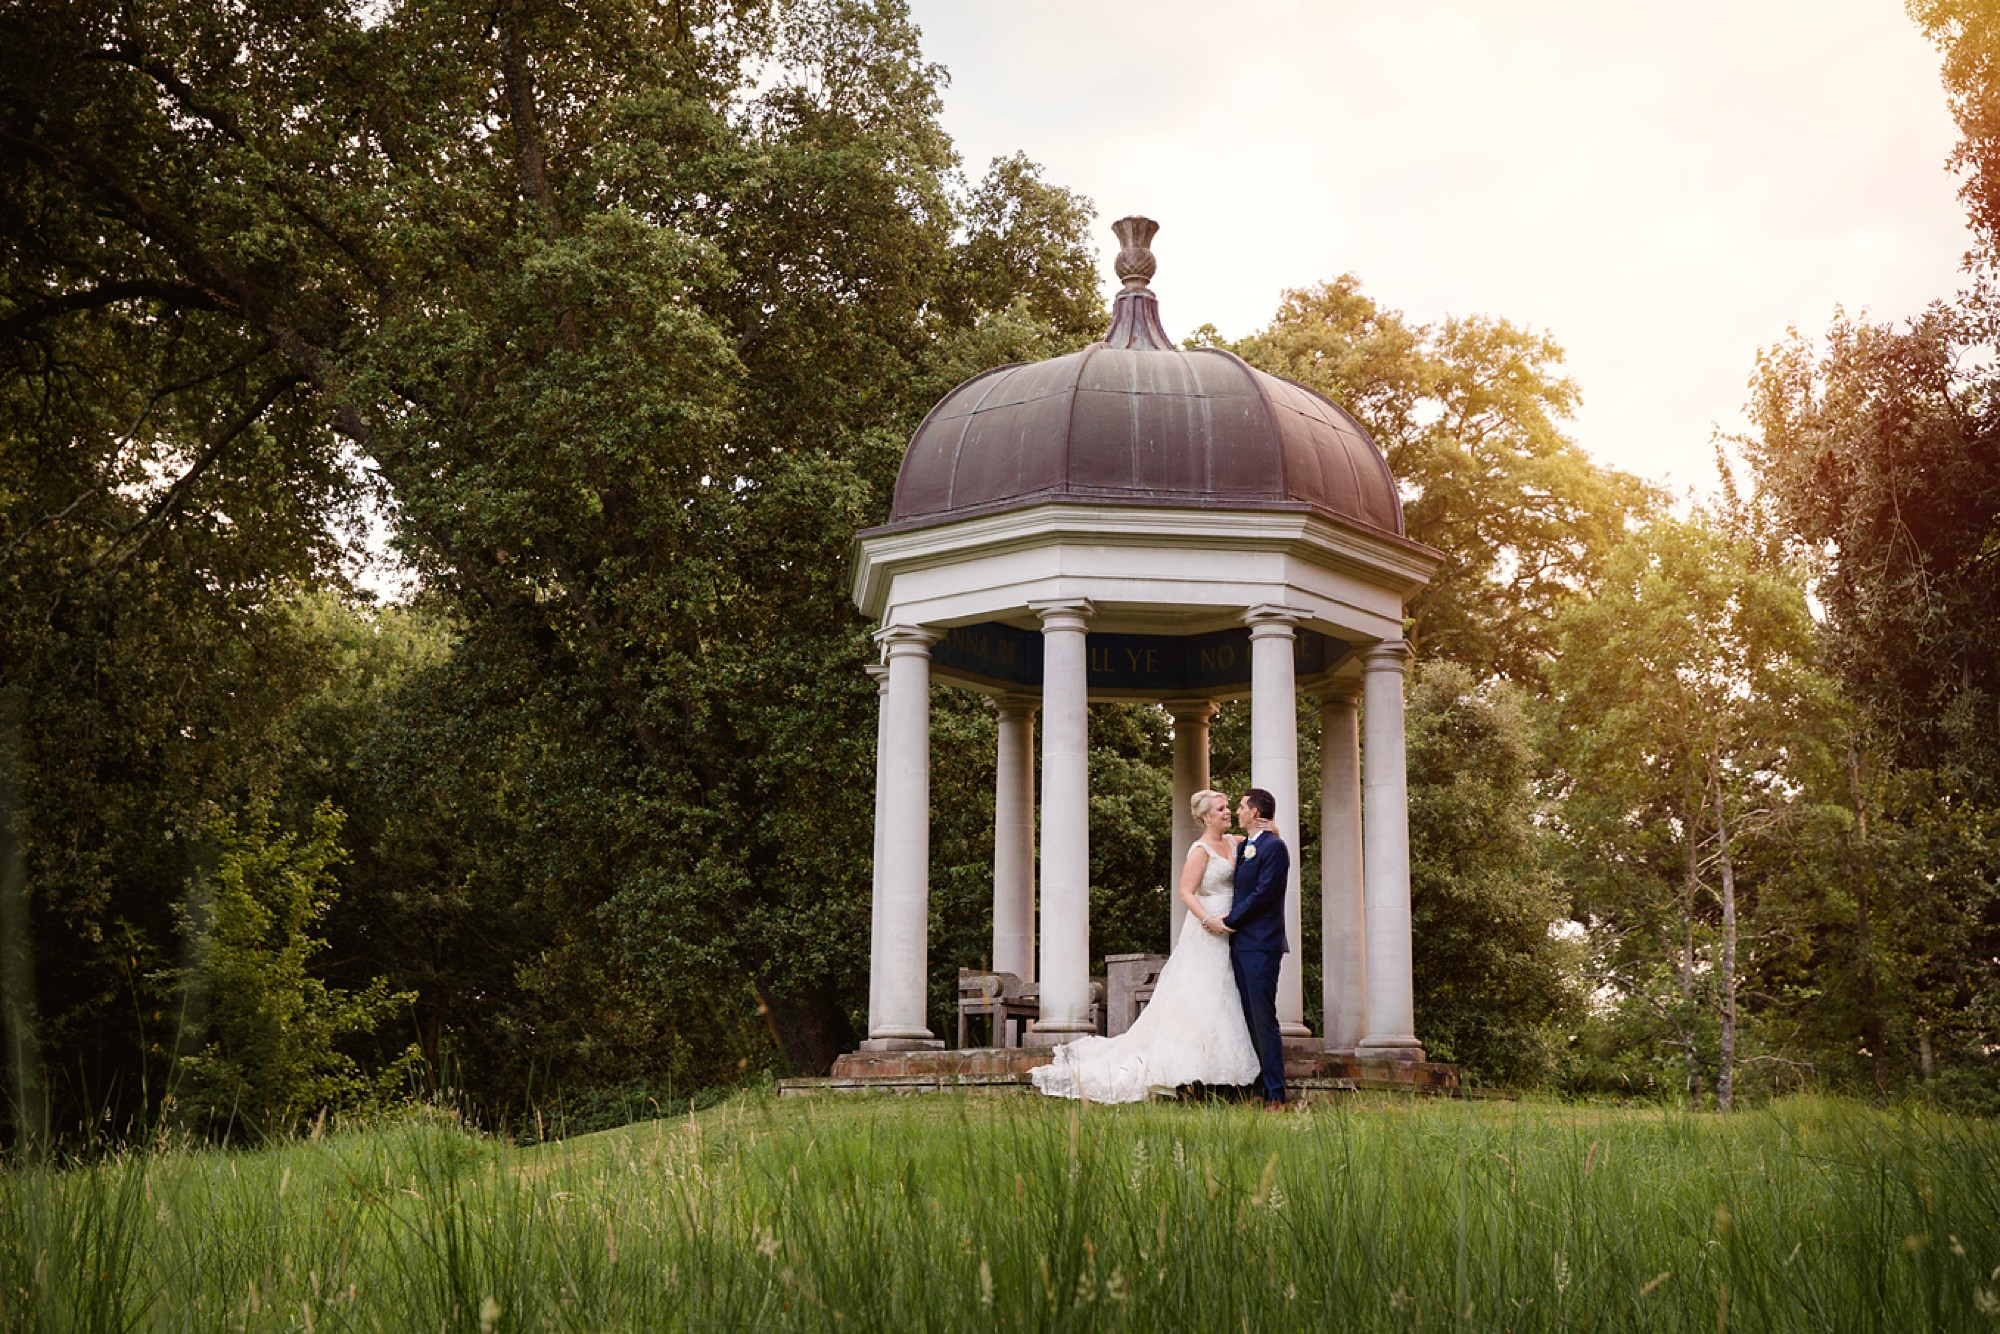 Bignor Park wedding photography bride and groom in gardens at sunset